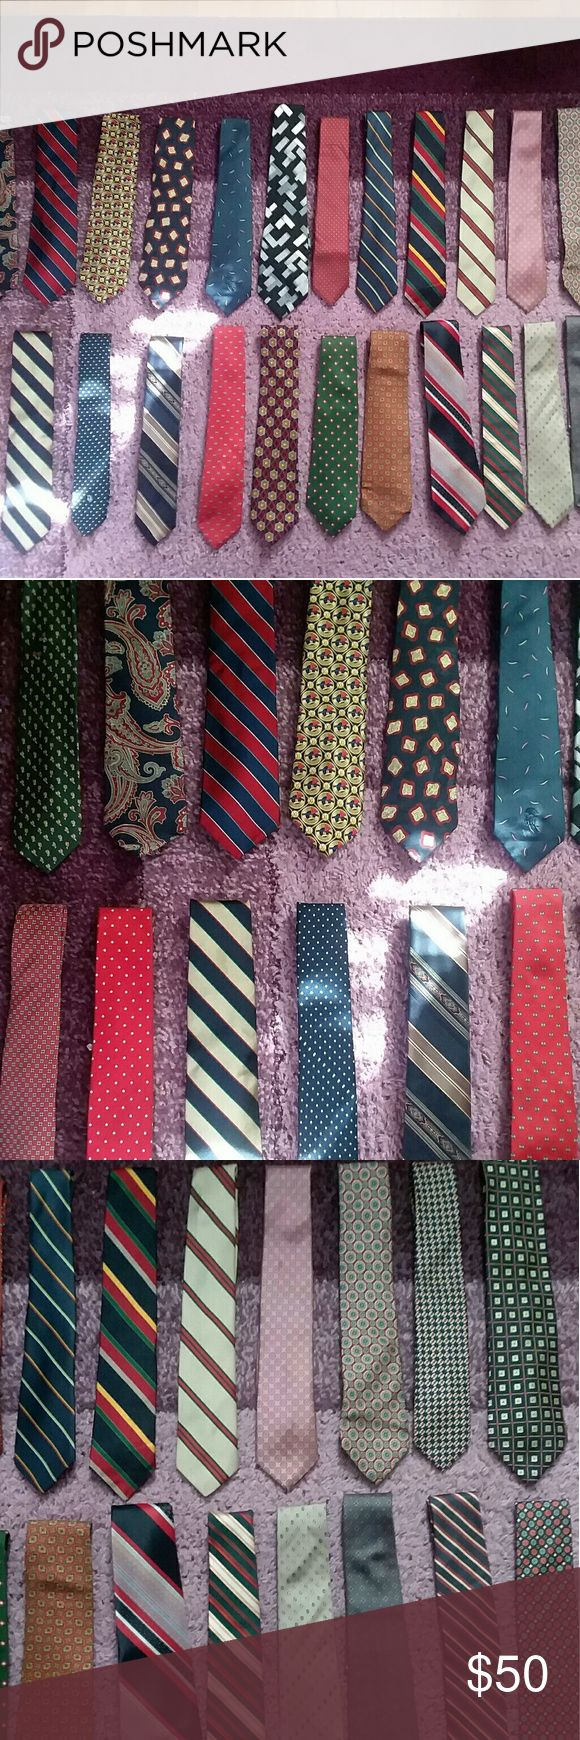 🌻SALE🌻 30 Men's Neckties Lot 30 neckties in good used condition.  Most of them are silk. Some of the brand names are Christian Dior, Saks Fifth Avenue, Pierre Carden, etc. At this price for all of these this is a steal. Saks Fifth Avenue Accessories Ties